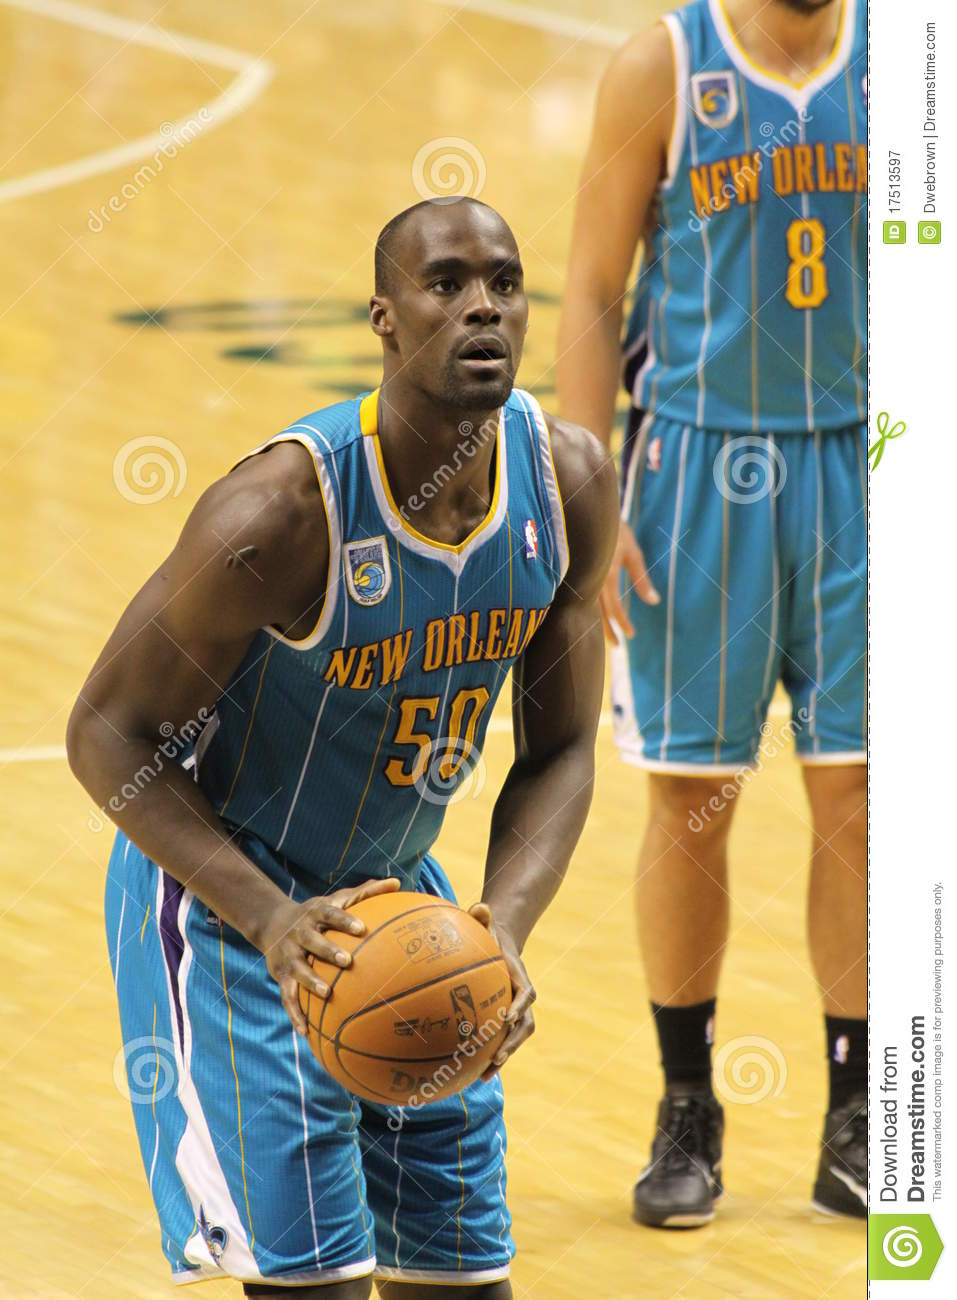 86d656f3 Emeka Okafor is attempting a free throw for the New Orleans Hornets during the  second half of action. New Orleans Hornets vs. Indiana Pacers at Conseco ...